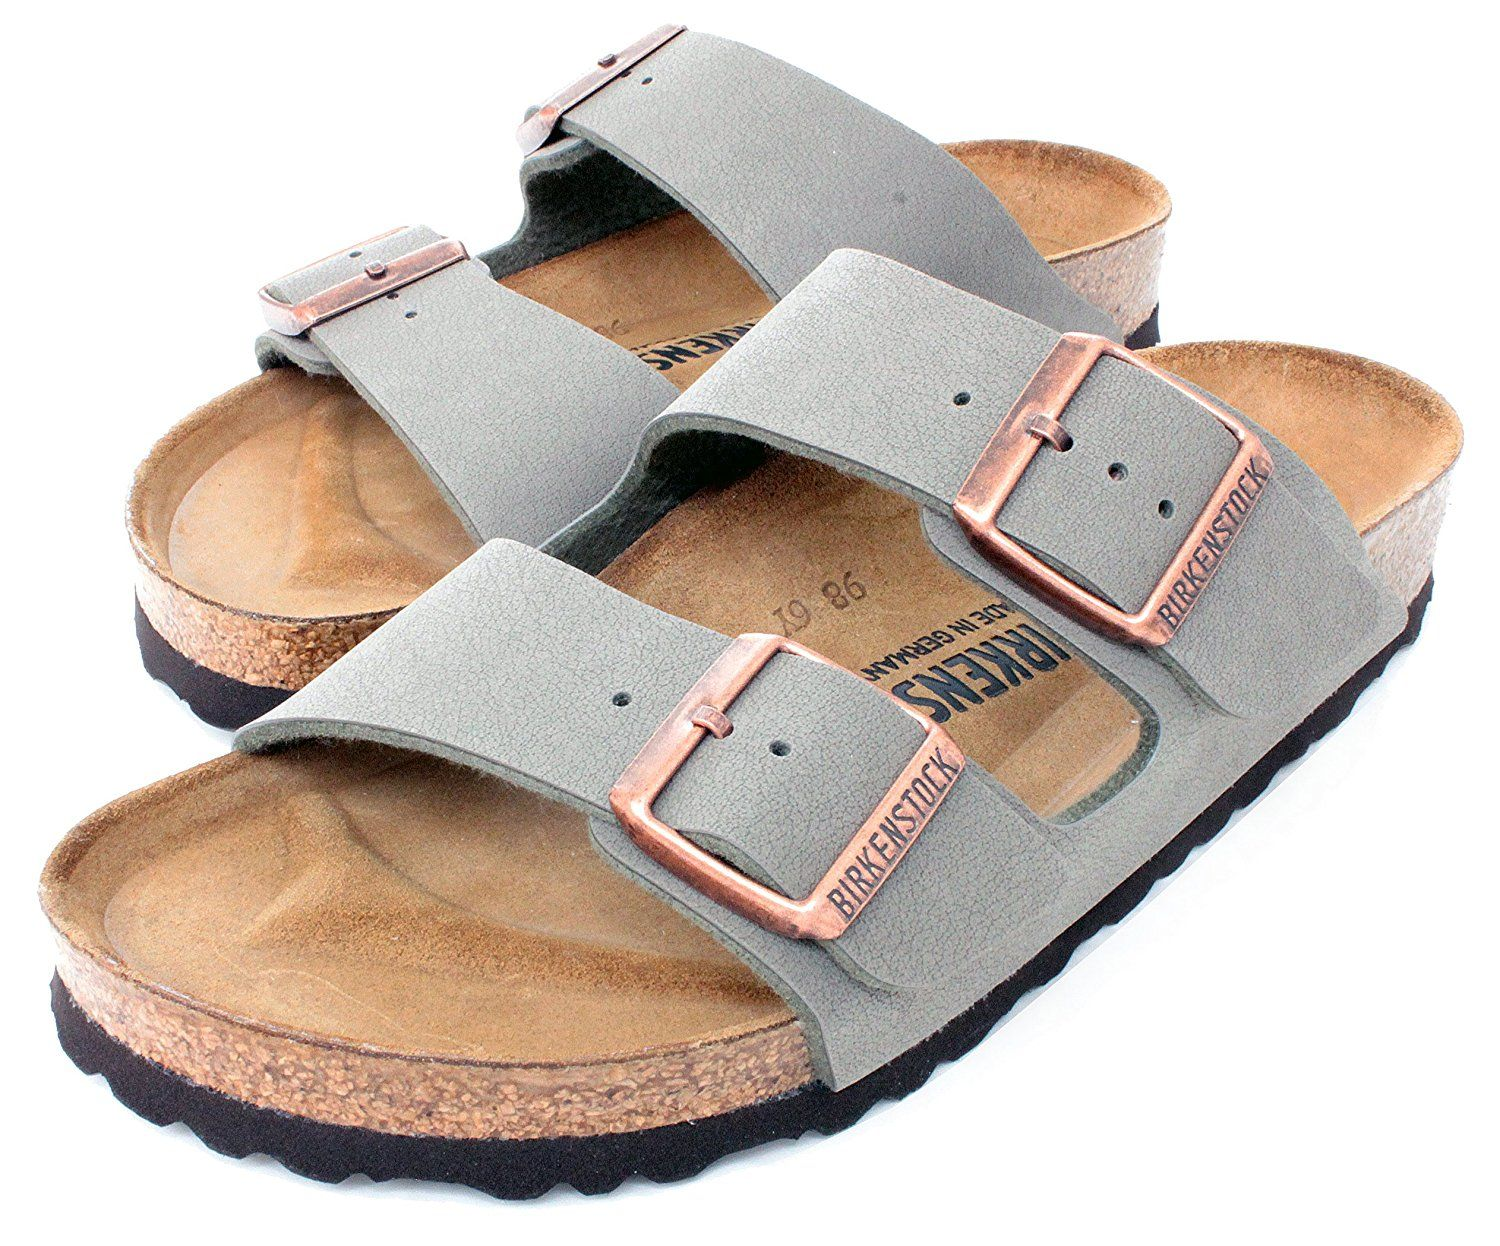 Amazon.com | Birkenstock Arizona 2-Strap Women's Sandals in Stone  Birko-Flor (39 N EU - Narrow) | Sport Sandals & Slides